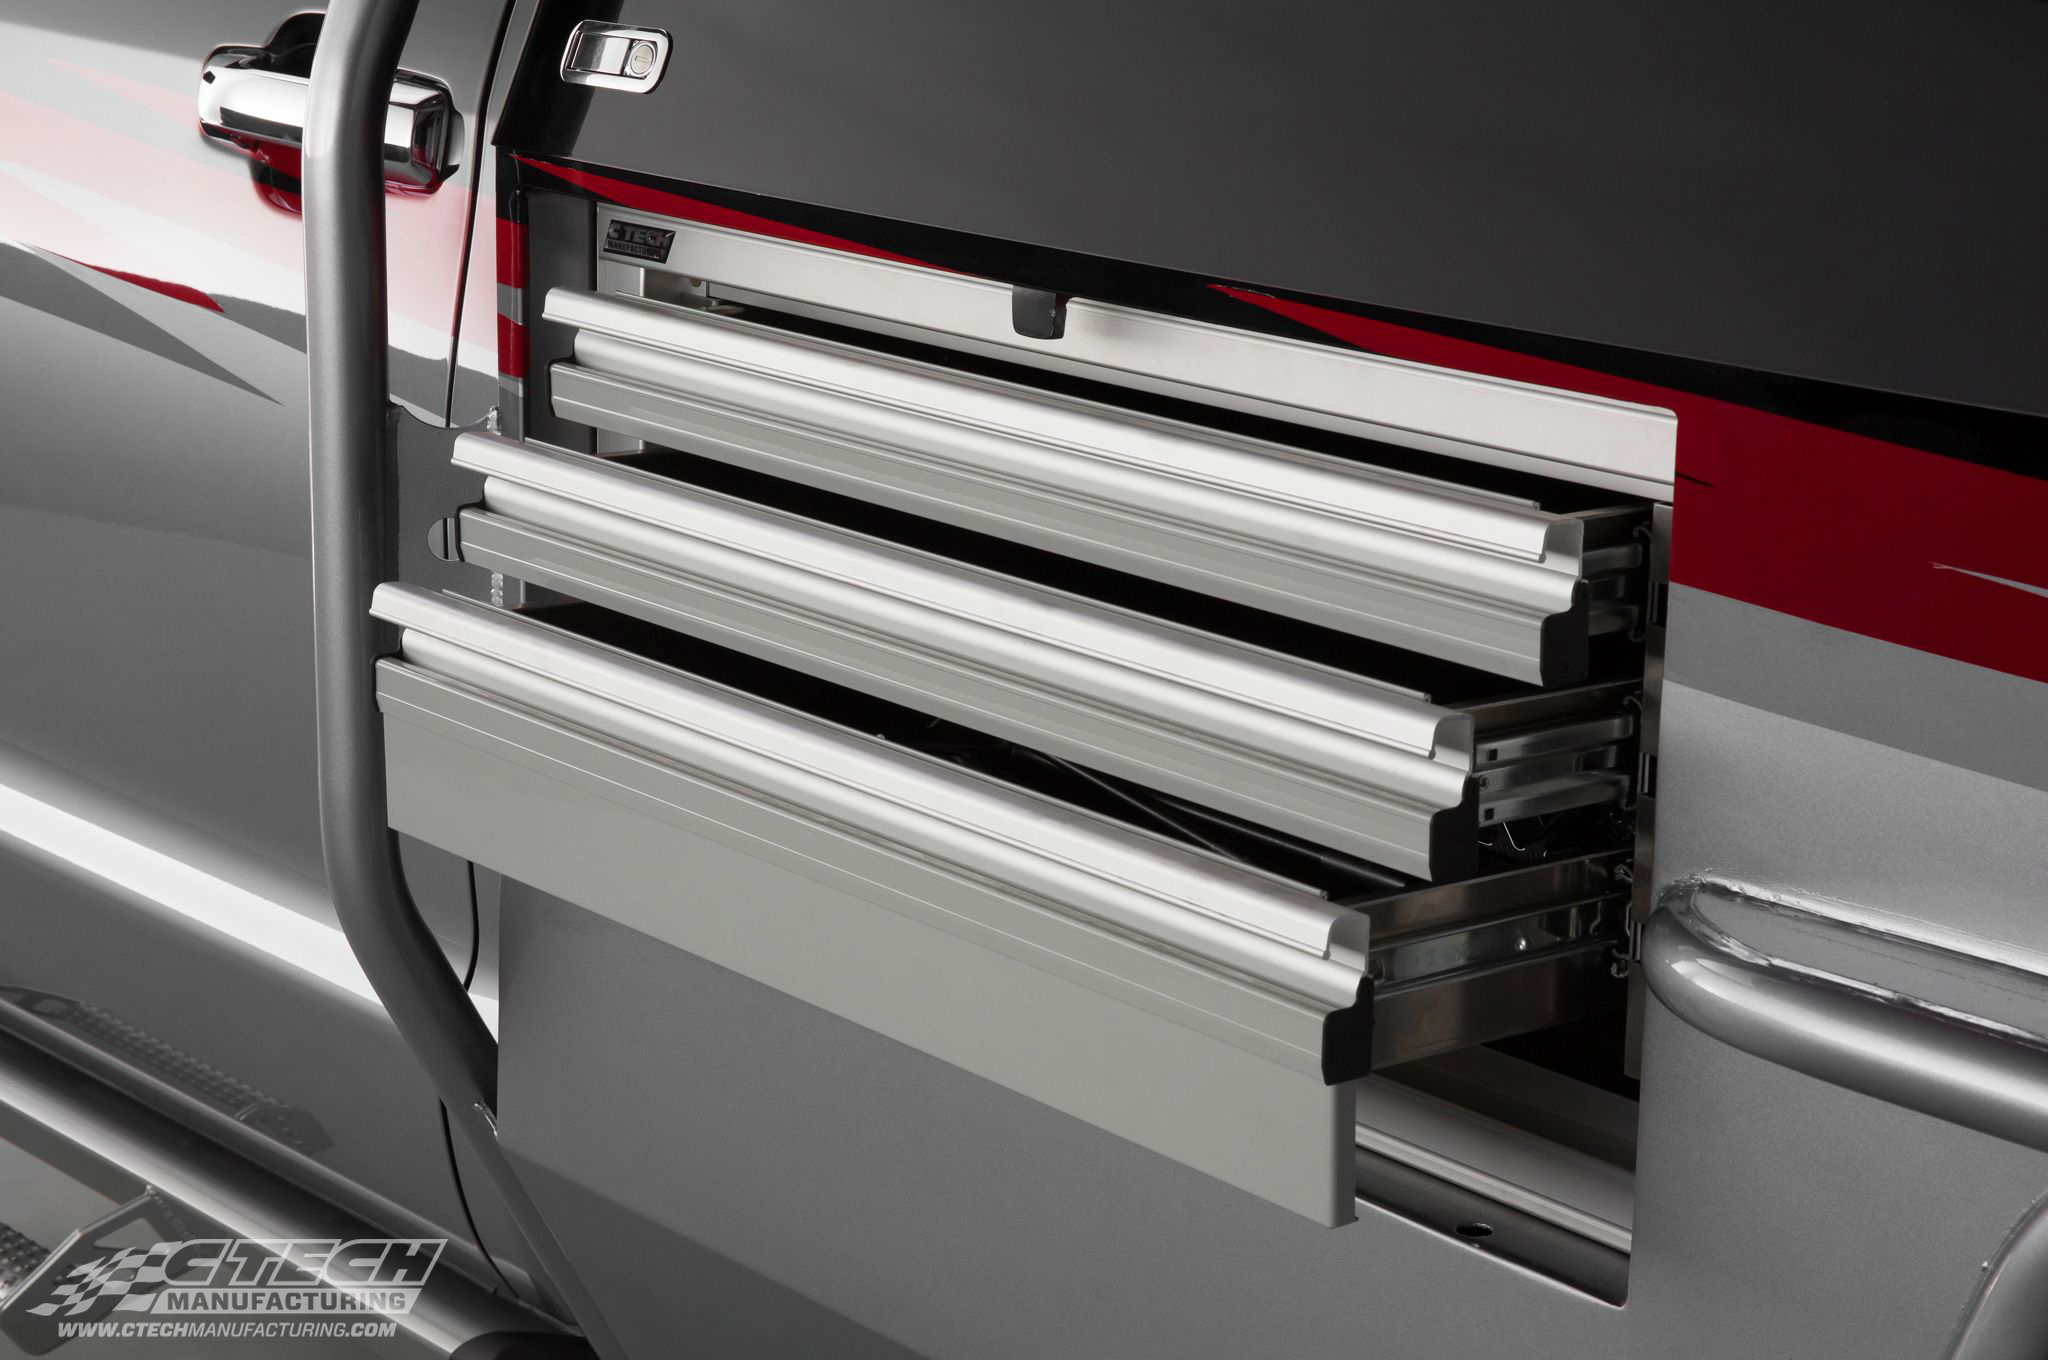 When Toyota decided to build a special off-road vehicle, they chose to put CTech Tool Drawers in the truck bed body. They wanted nothing but the best for their Let's Go Moto Dream Truck!